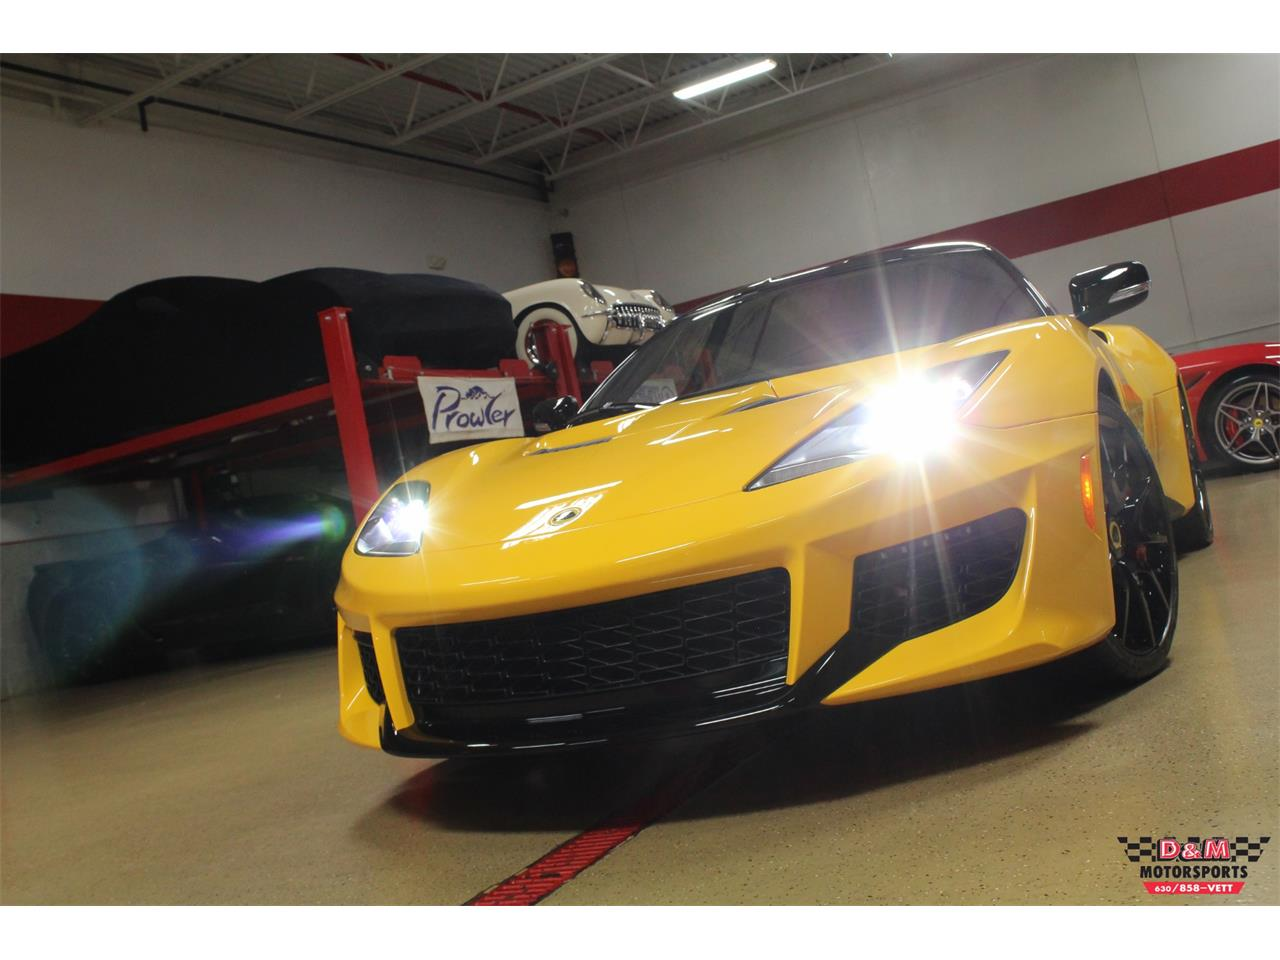 Large Picture of '17 Lotus Evora located in Glen Ellyn Illinois - $76,995.00 Offered by D & M Motorsports - OY1K